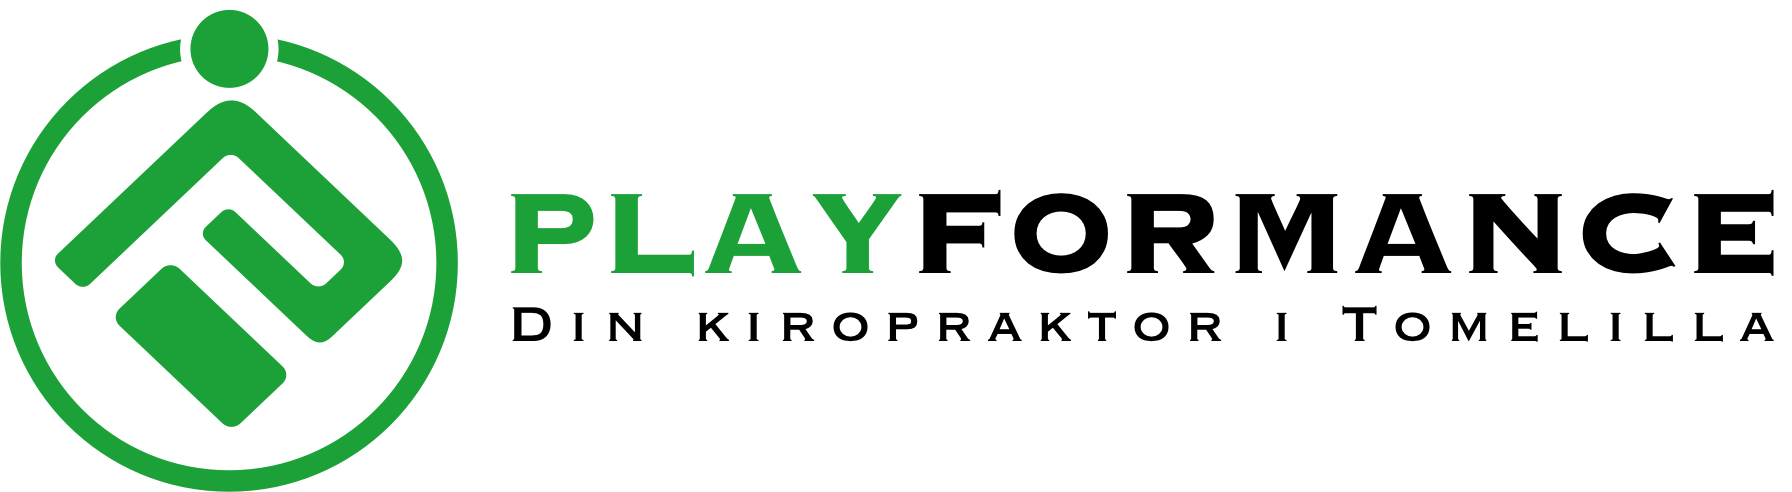 Playformance logo 2 - internet